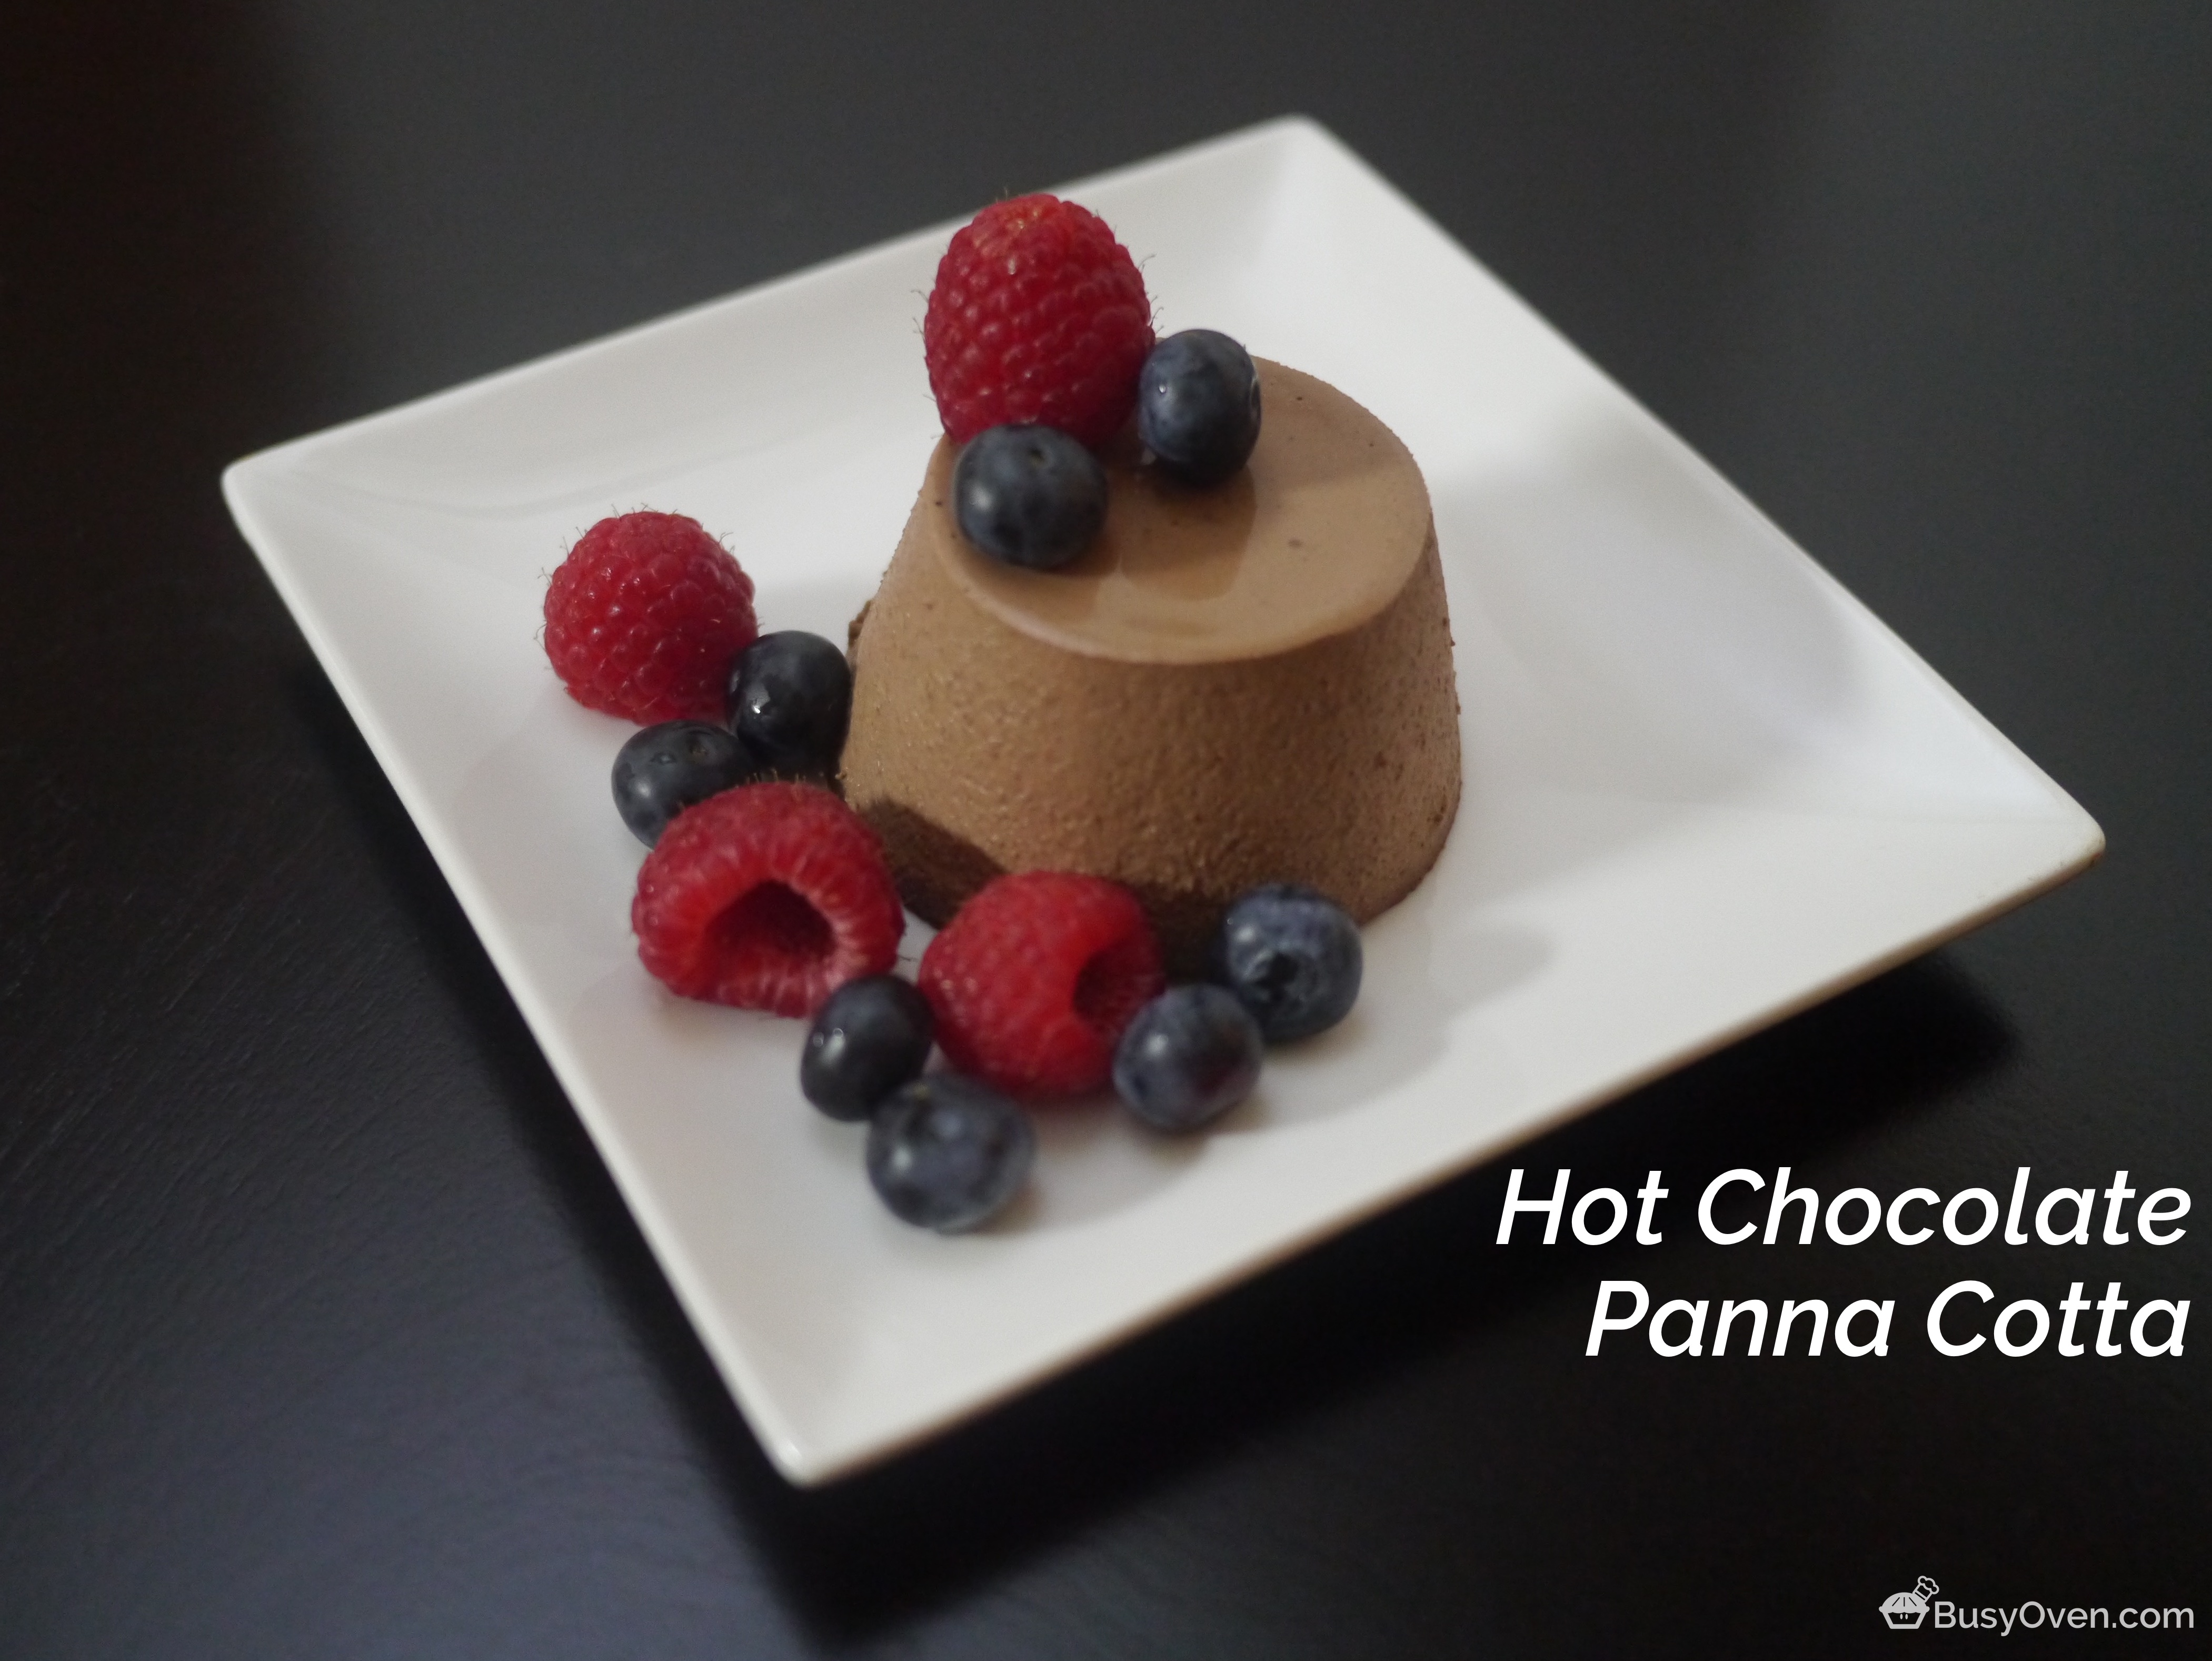 Hot Chocolate Panna Cotta